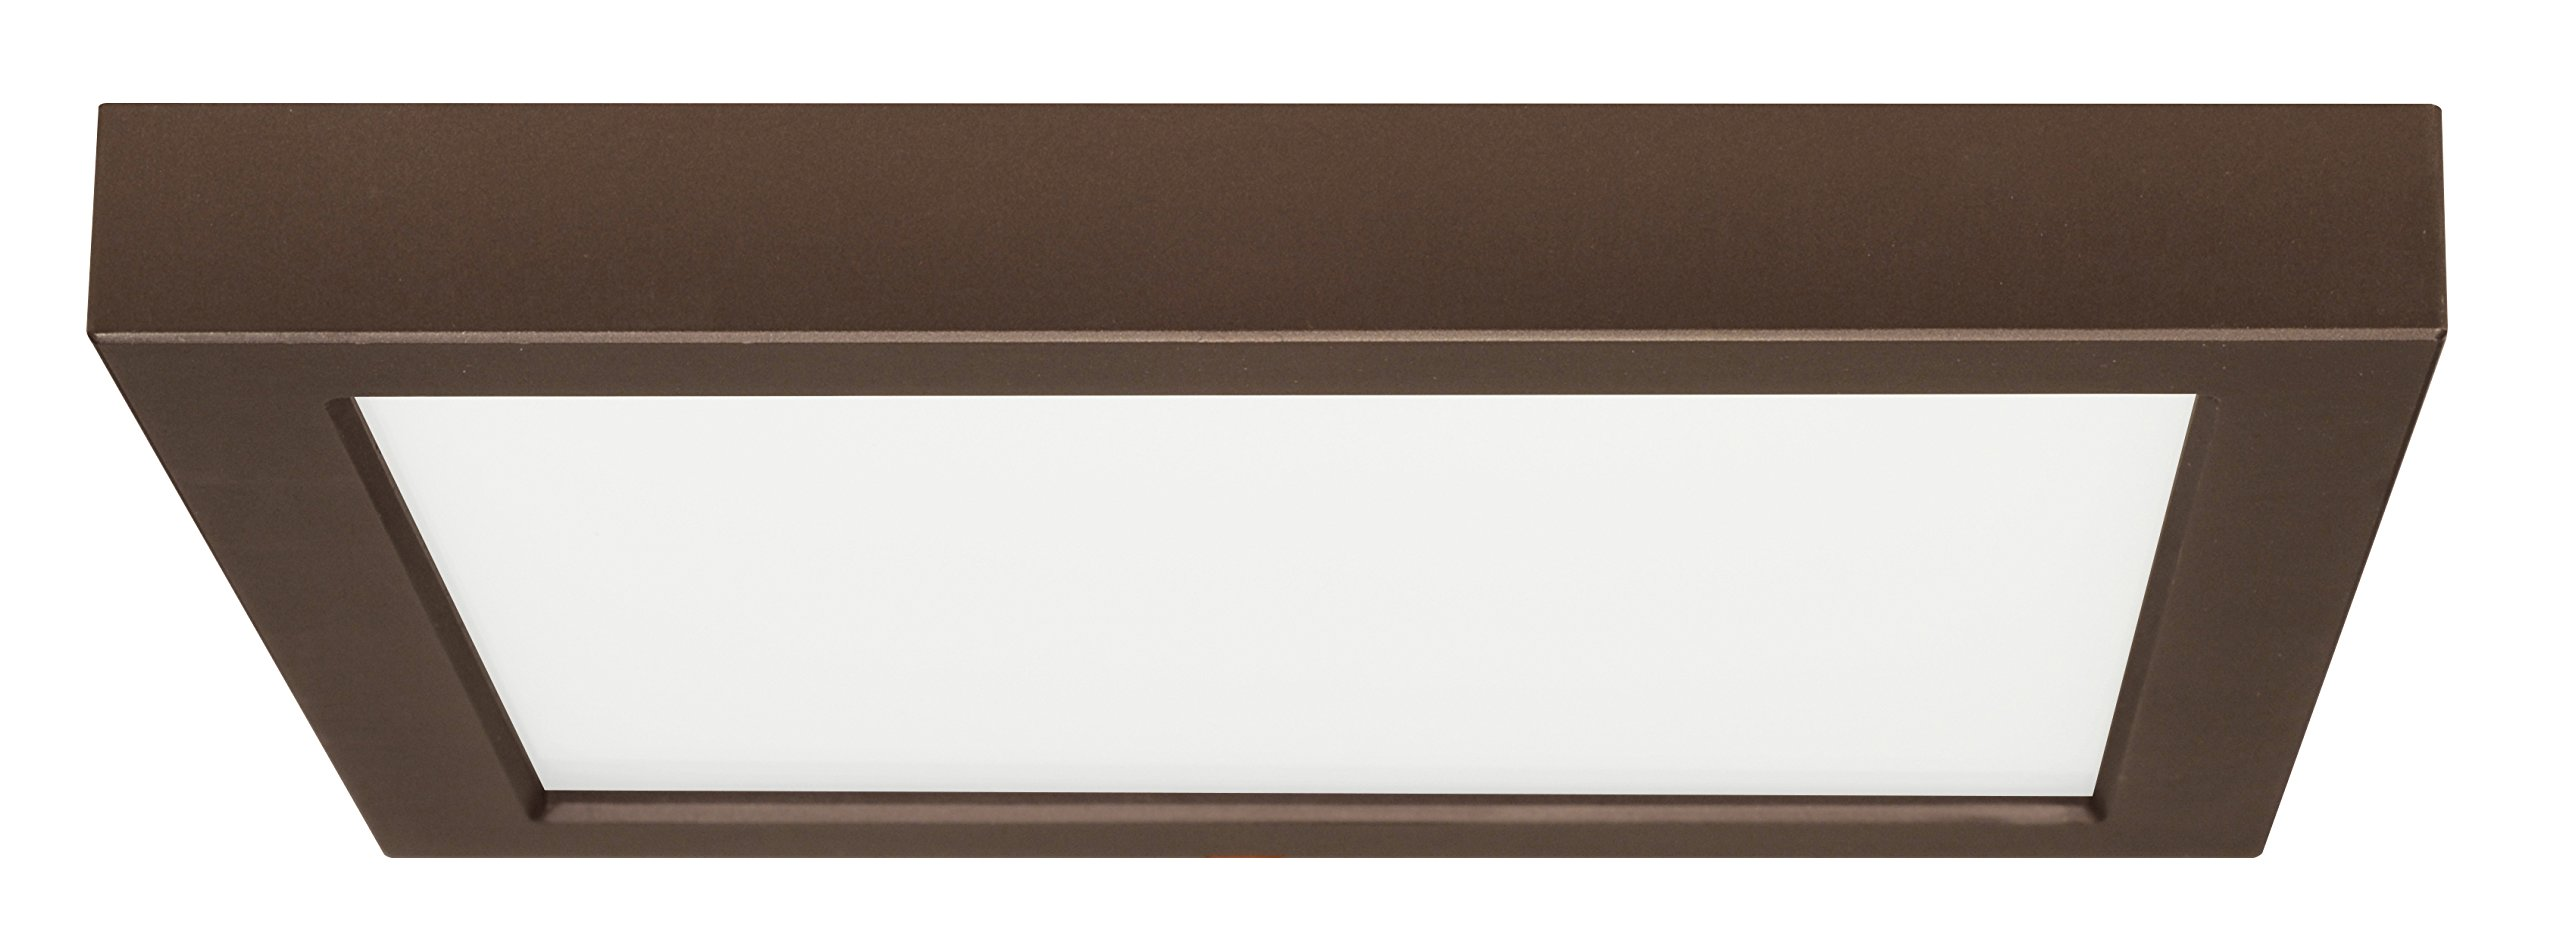 Satco Products S9342 Blink Flush Mount LED Fixture, 18.5W/9'', Bronze Finish